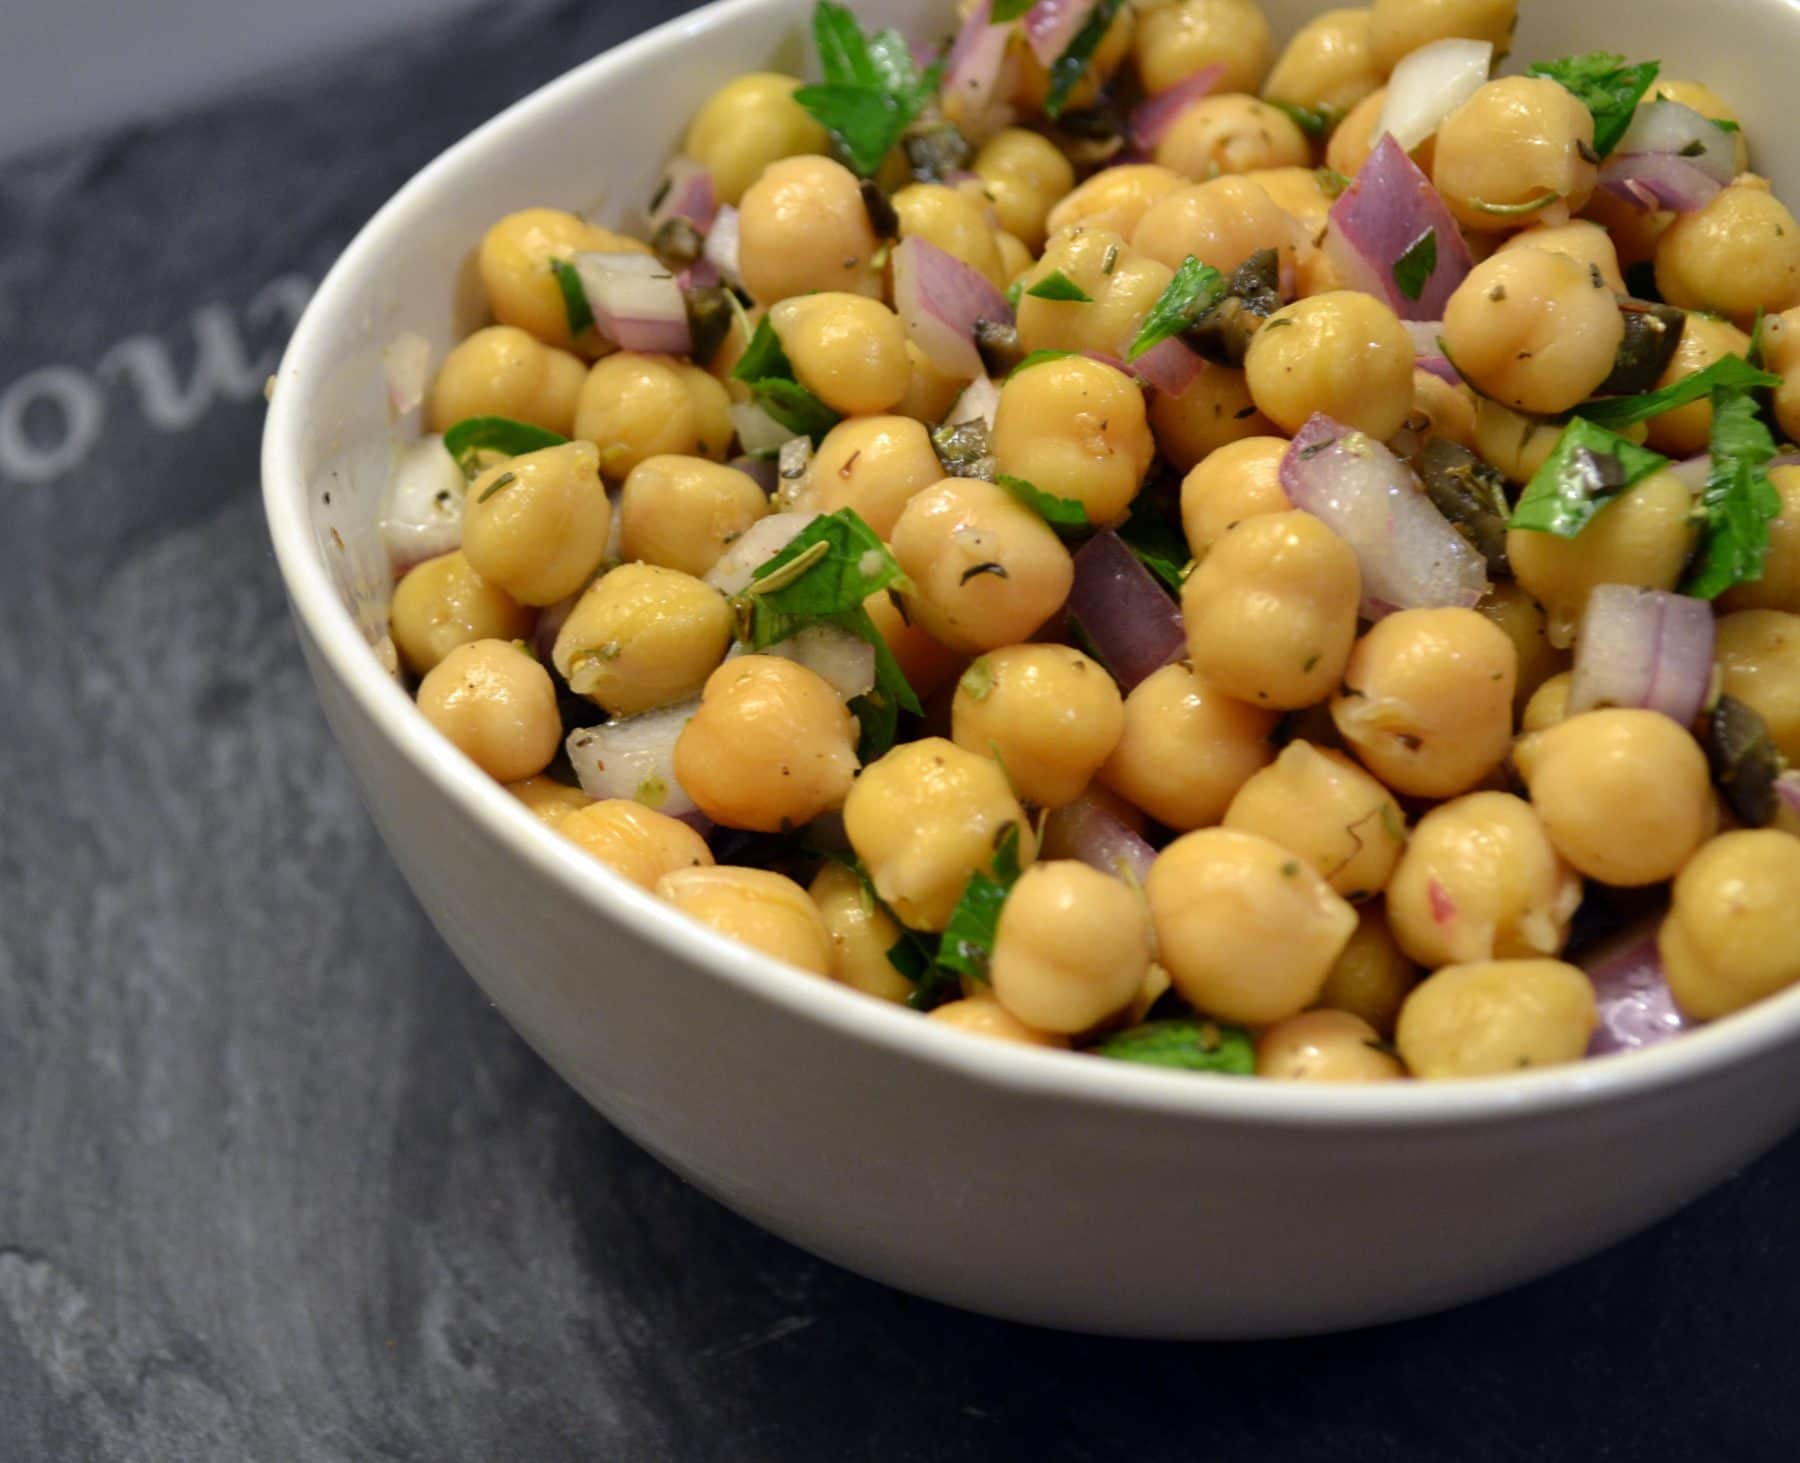 Cowboy Caviar {Chickpea Salad with Olives and Herbs}